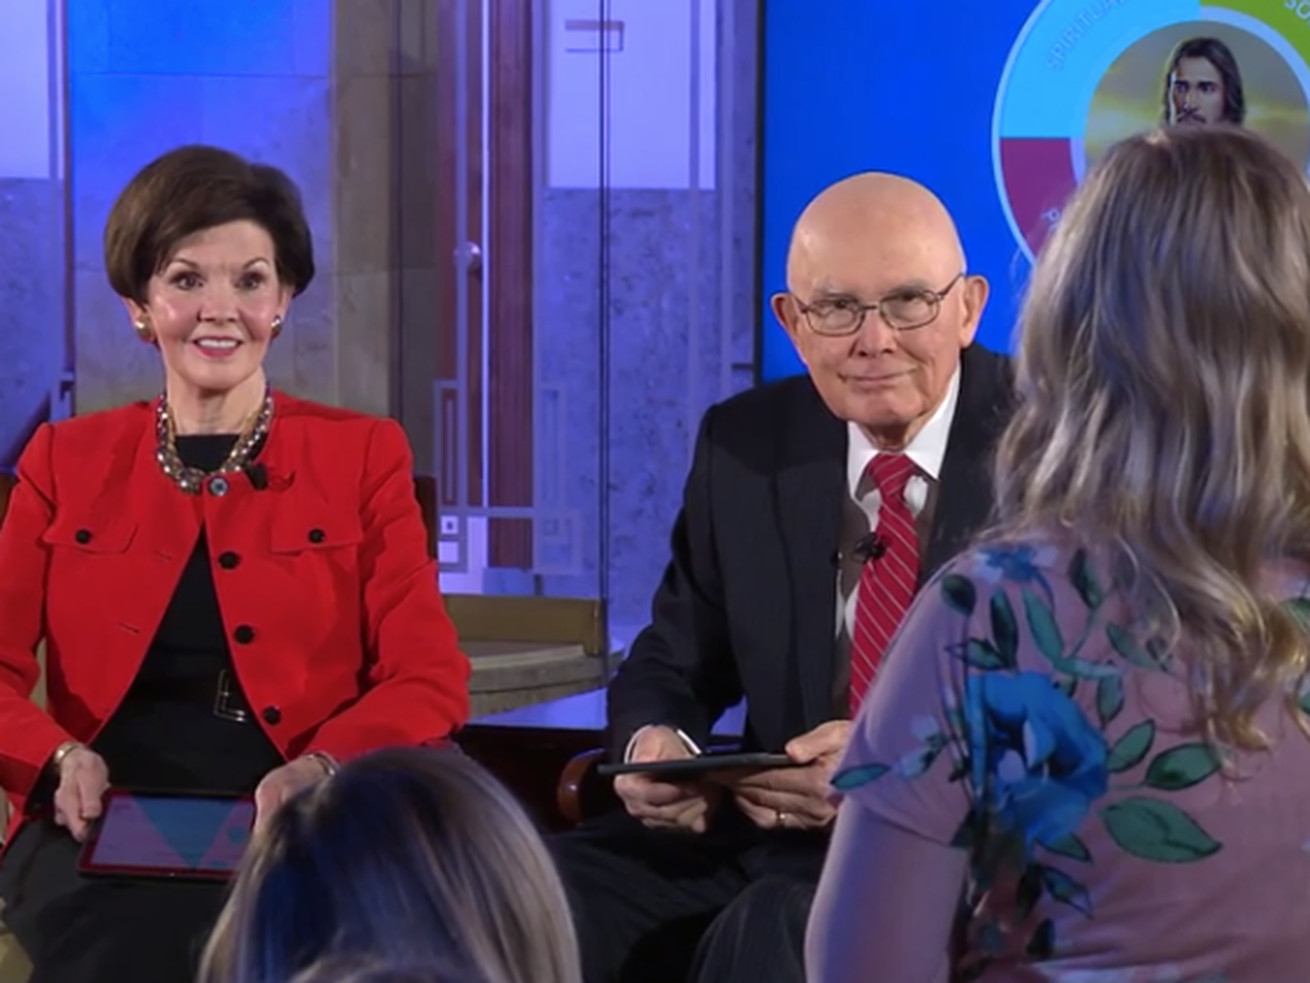 'You can do this': President and Sister Oaks tell youth during Face to Face on new program